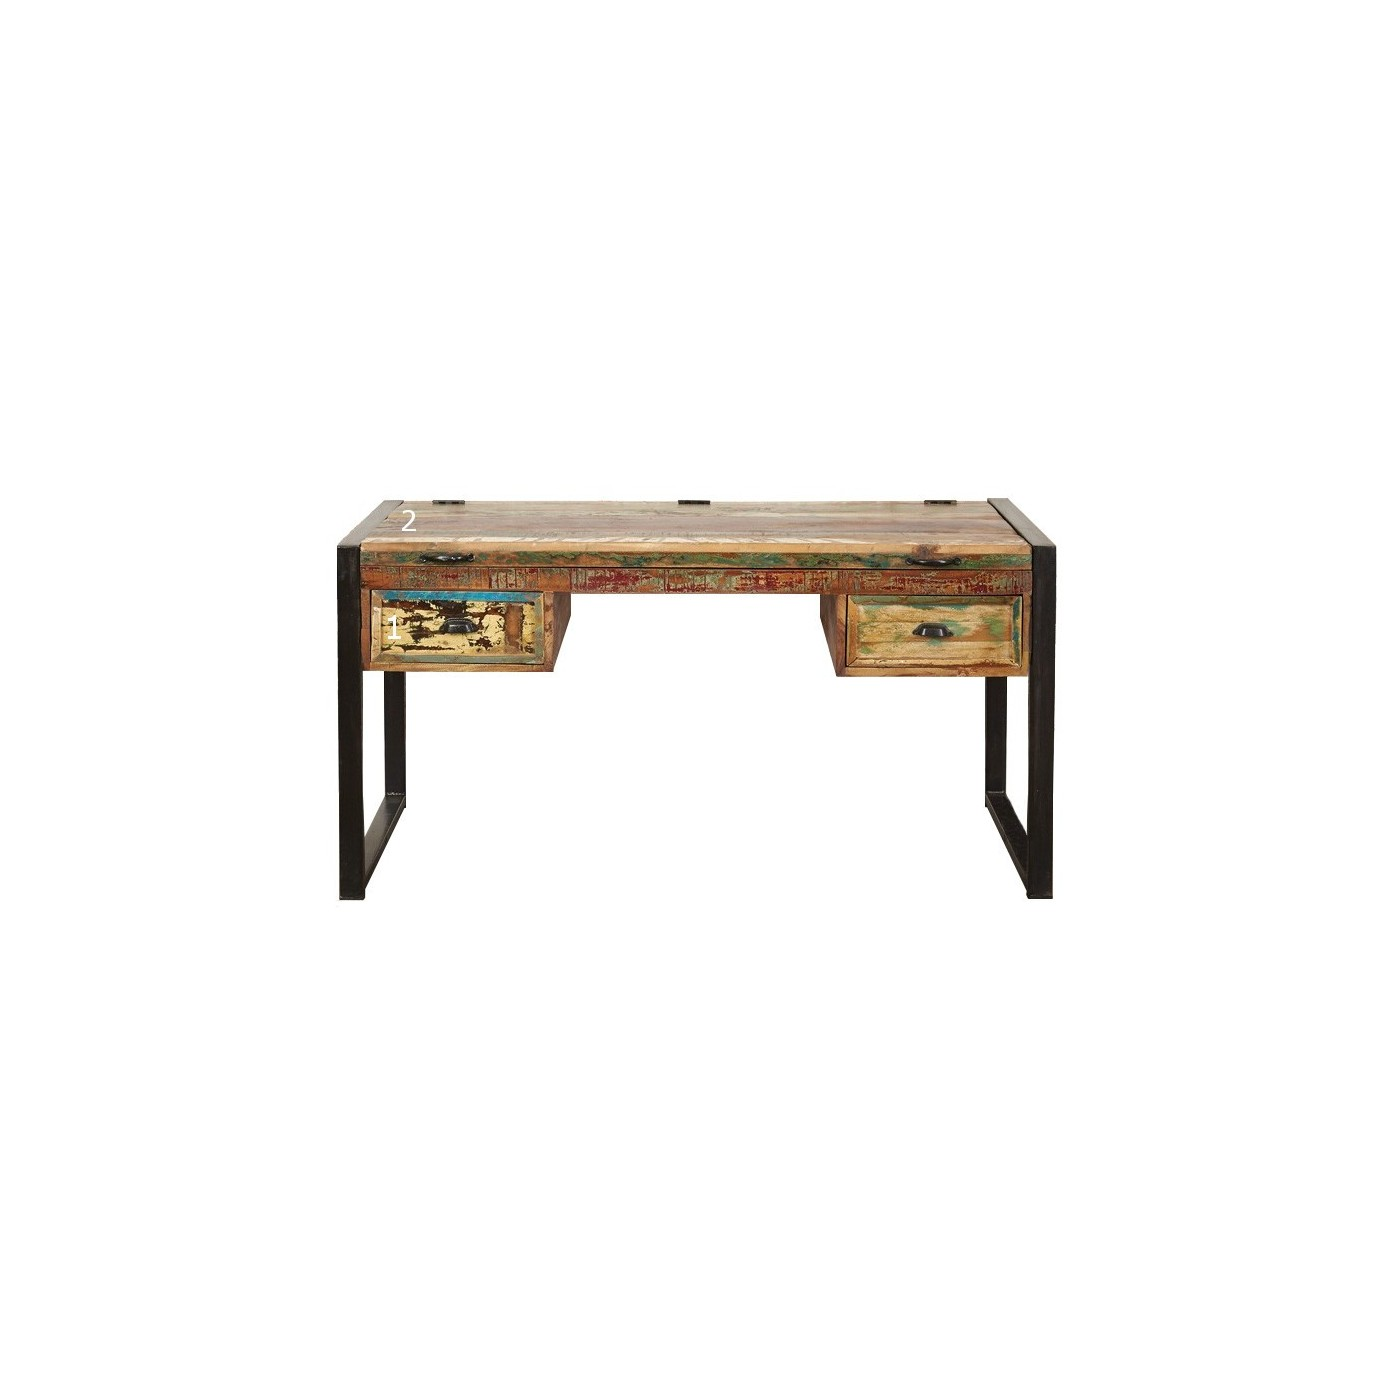 Large Reclaimed Wood Office Desk with Secret Compartment | Akola